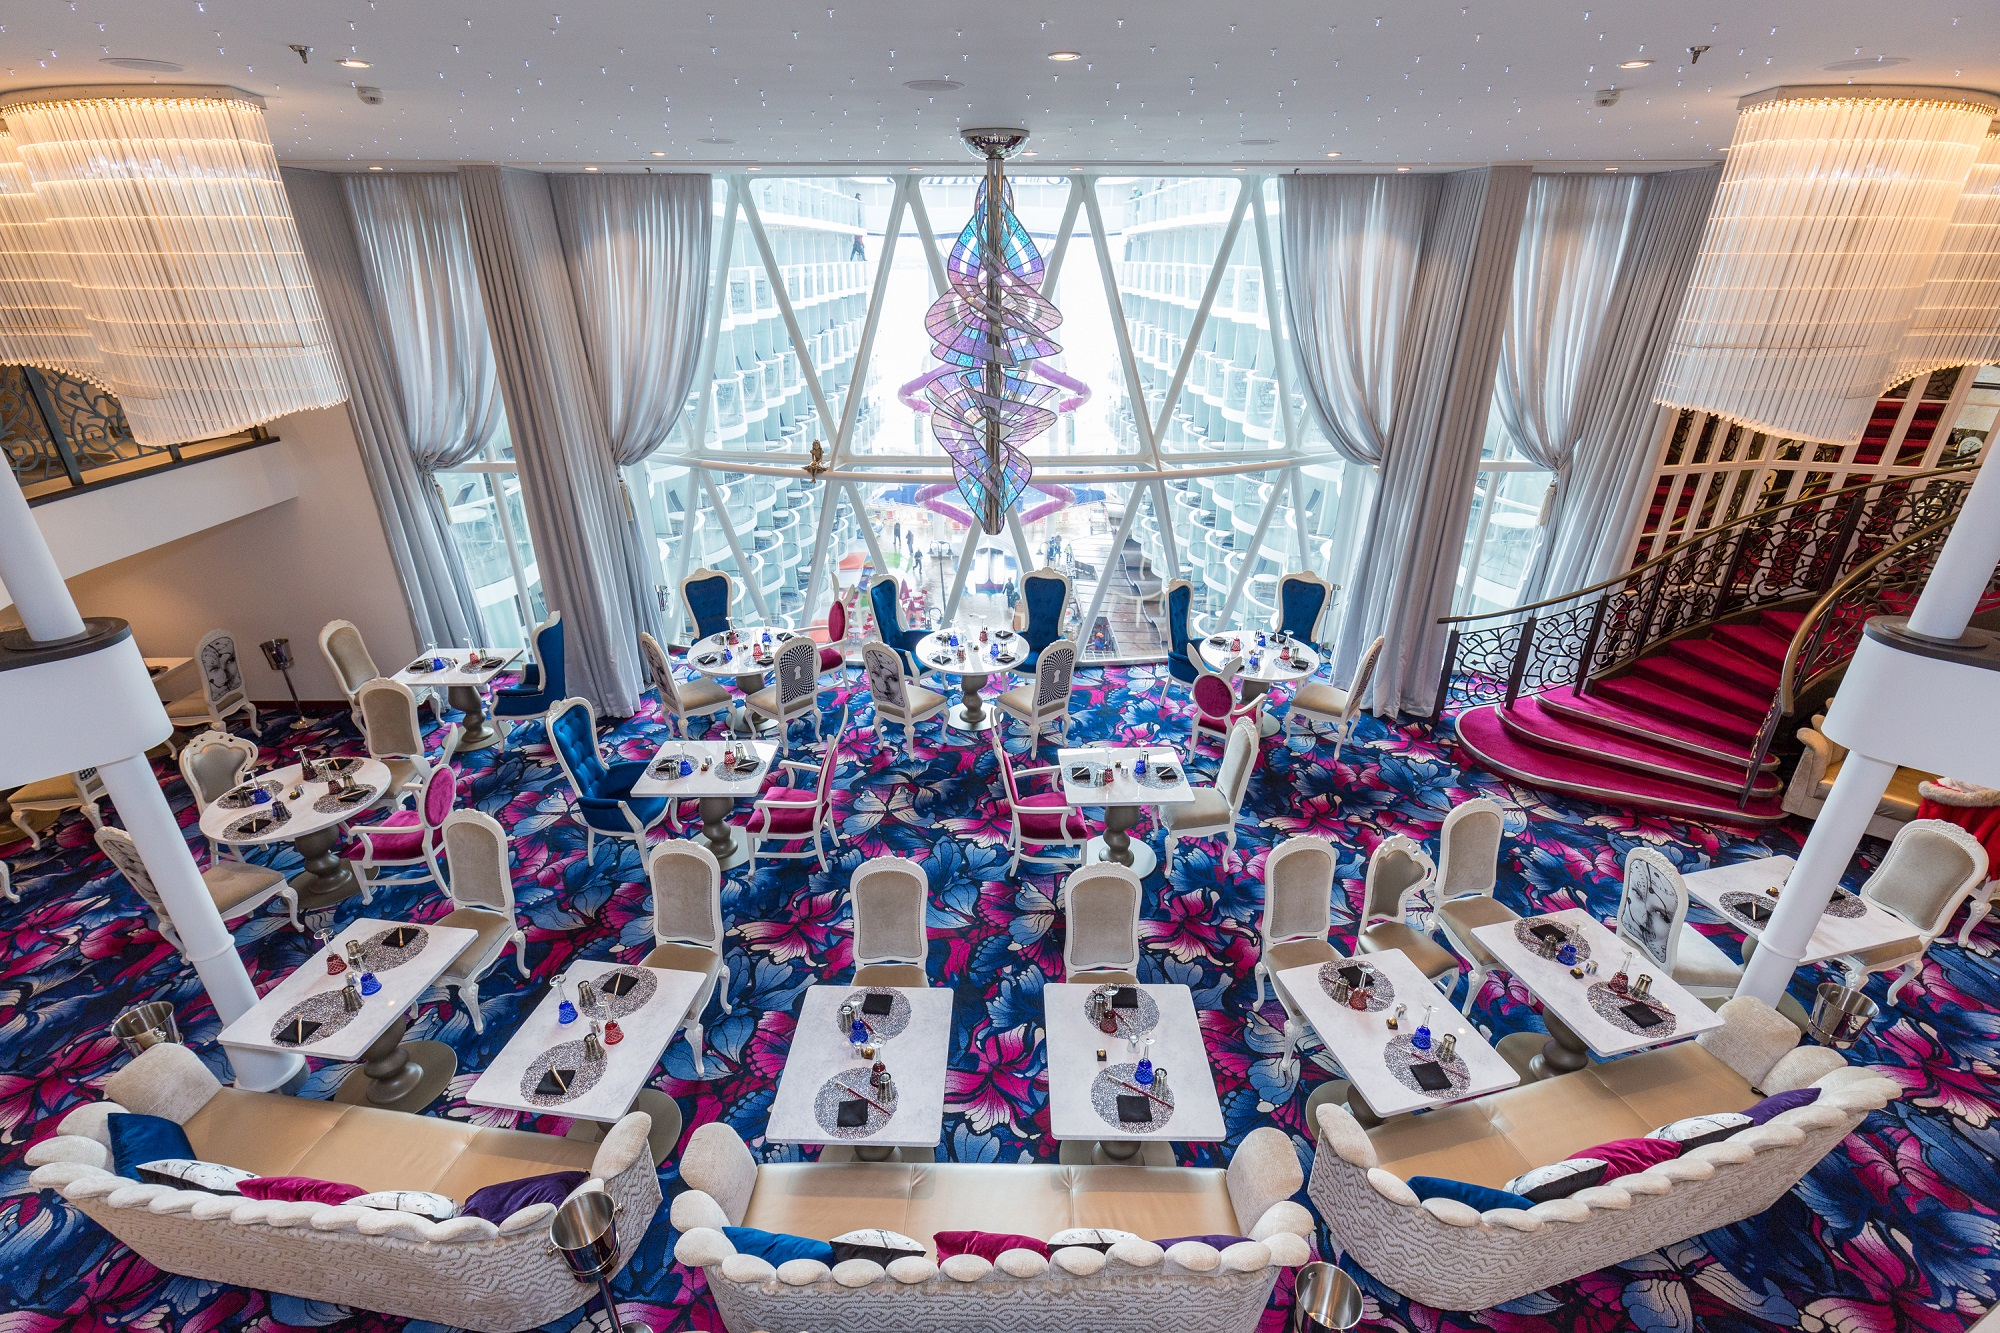 Inside Wonderland on Symphony of the Seas